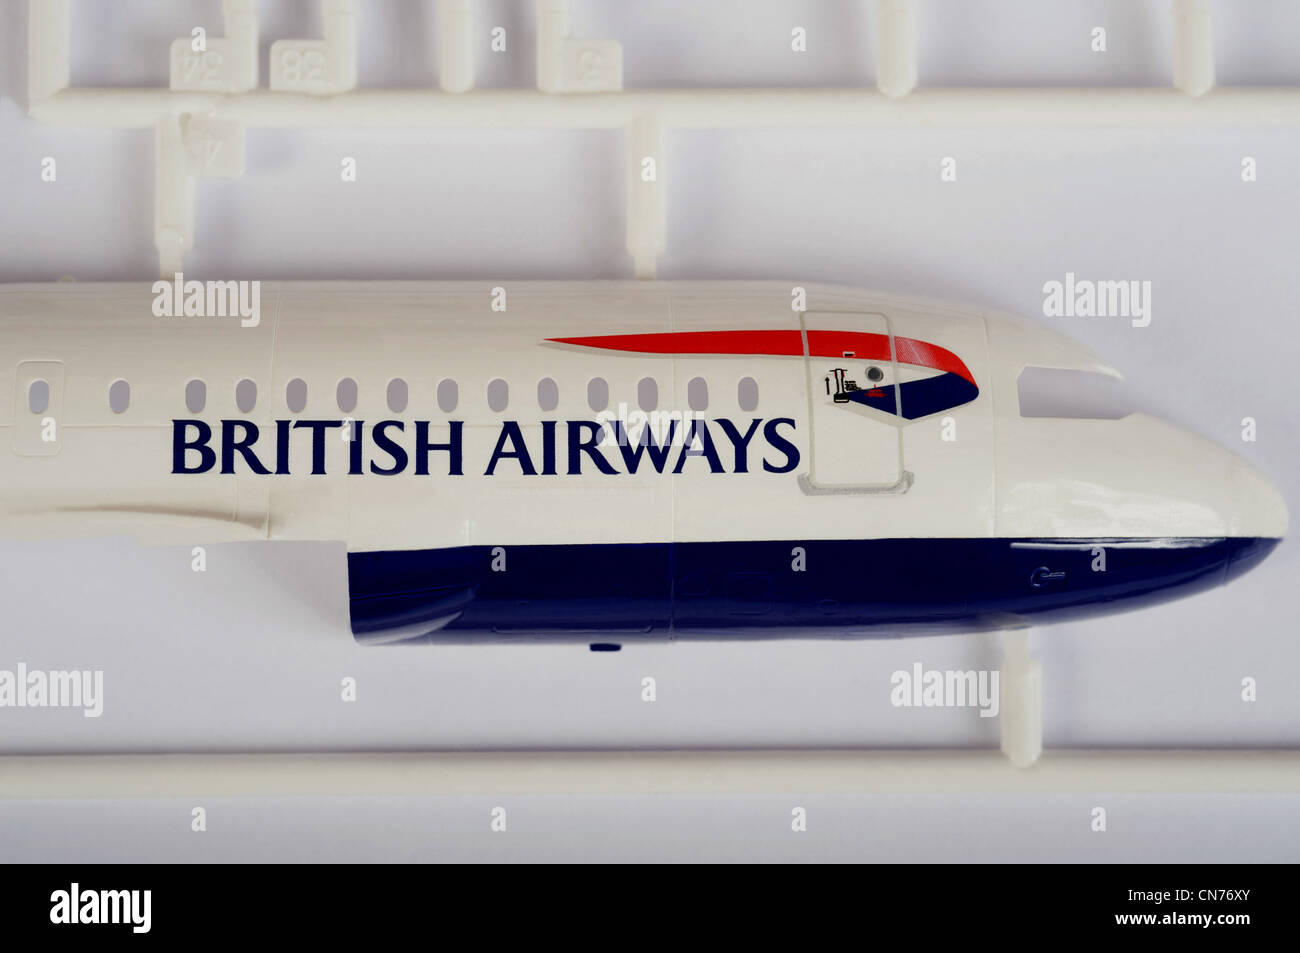 Scale model of a British Airways Airbus A319 airliner - Stock Image